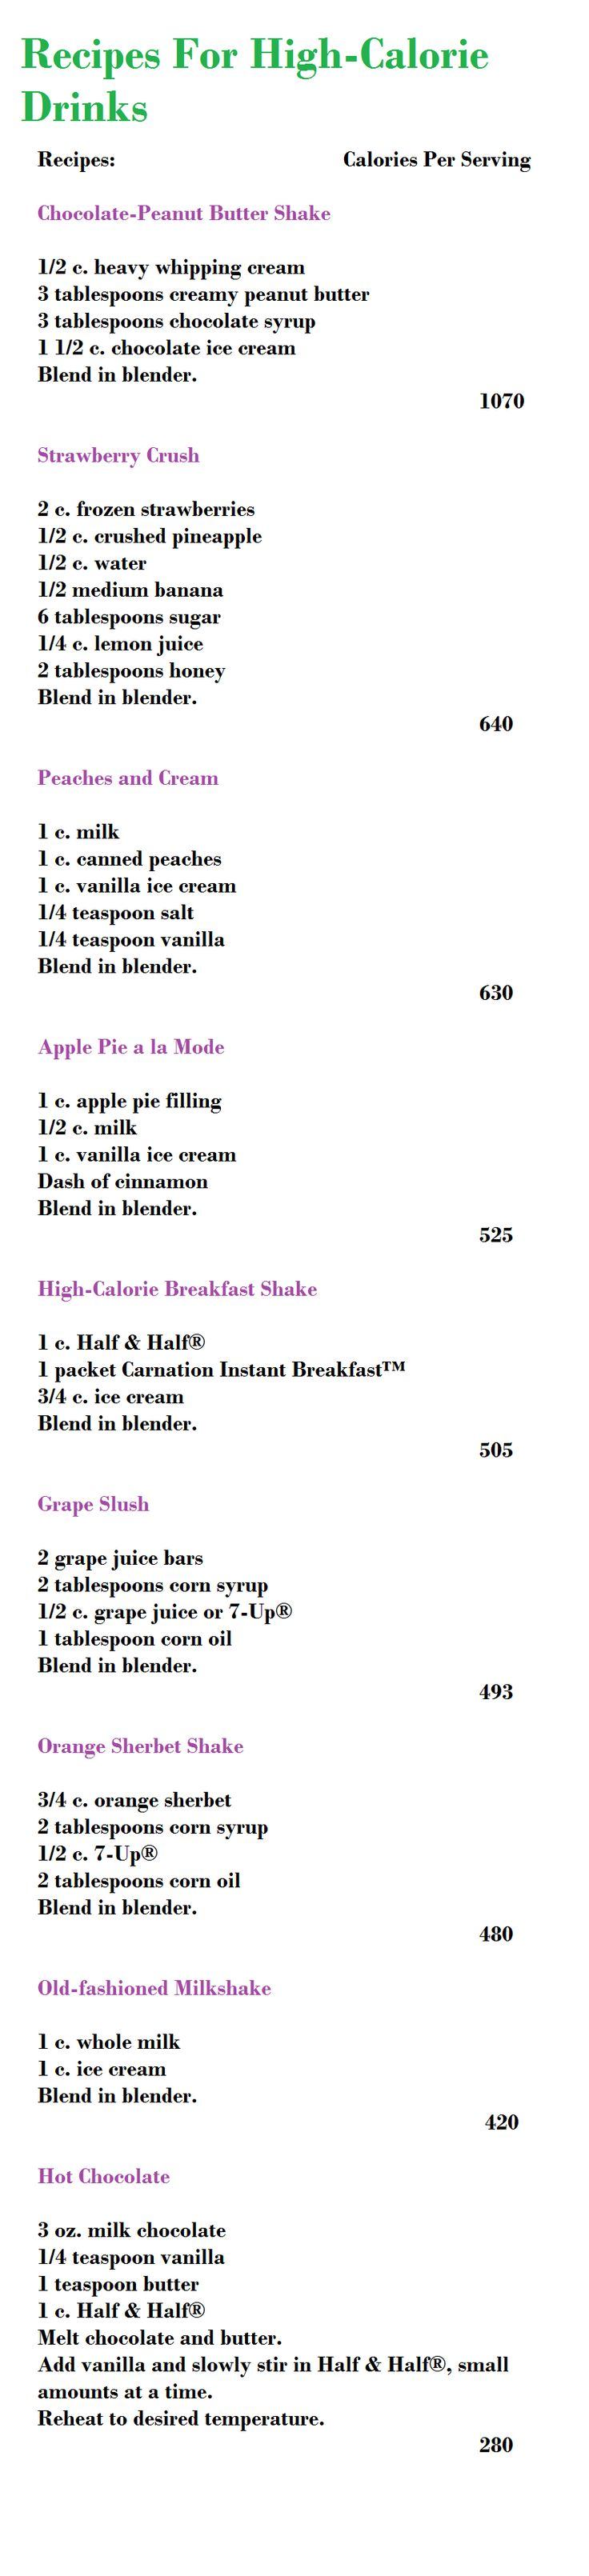 61 best weight gain images on pinterest health loosing weight and recipes for high calorie drinks weight gain mealshealthy forumfinder Image collections